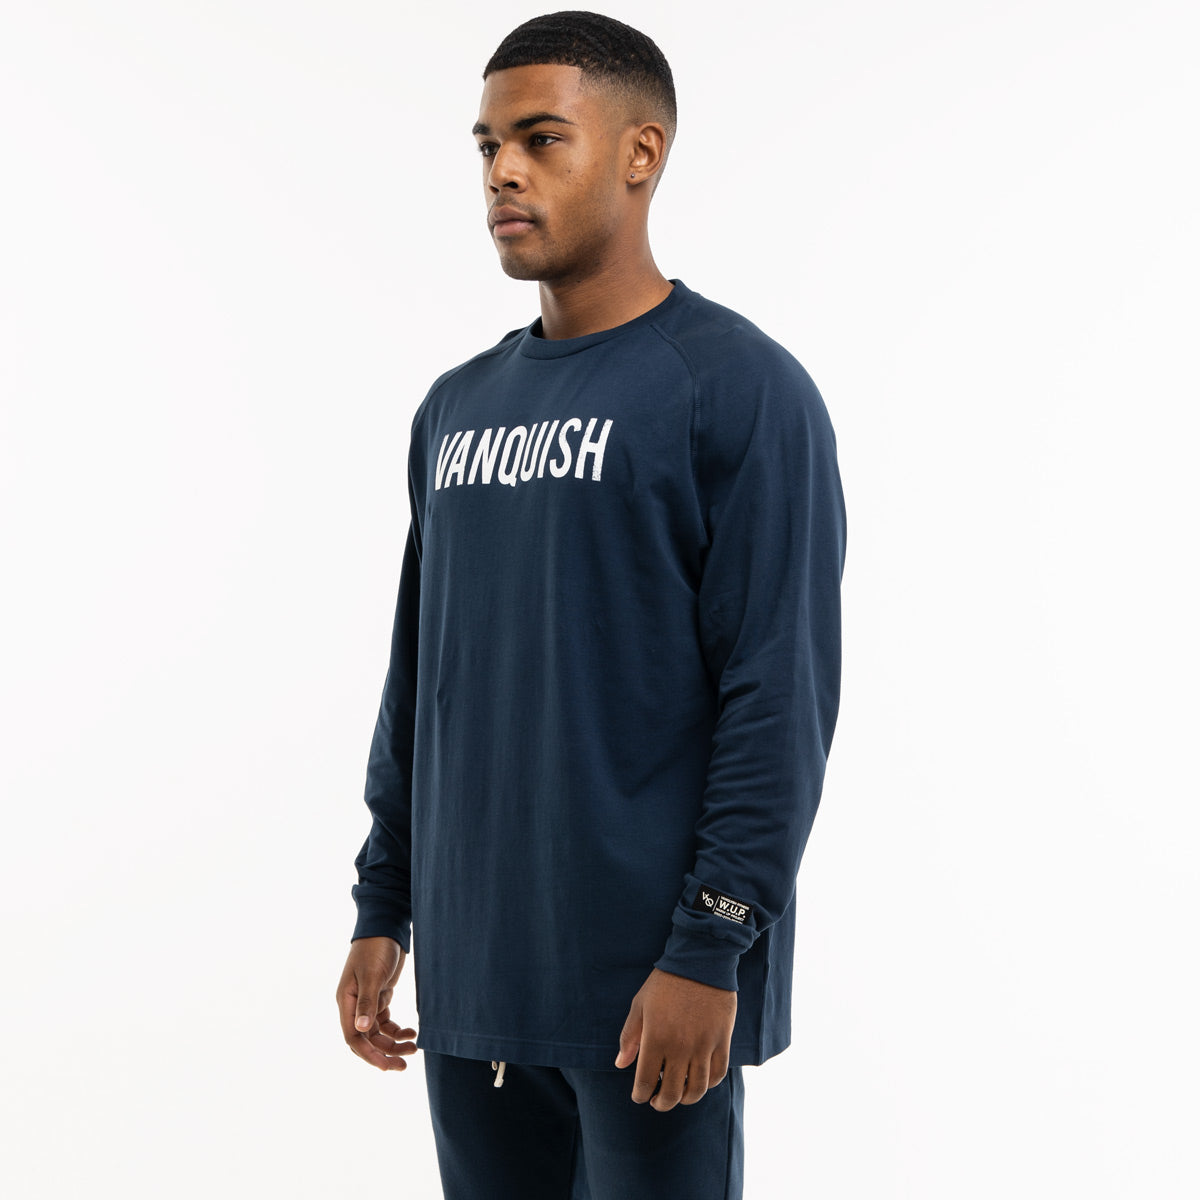 Vanquish Warm Up Project Navy Oversized Long Sleeve T Shirt